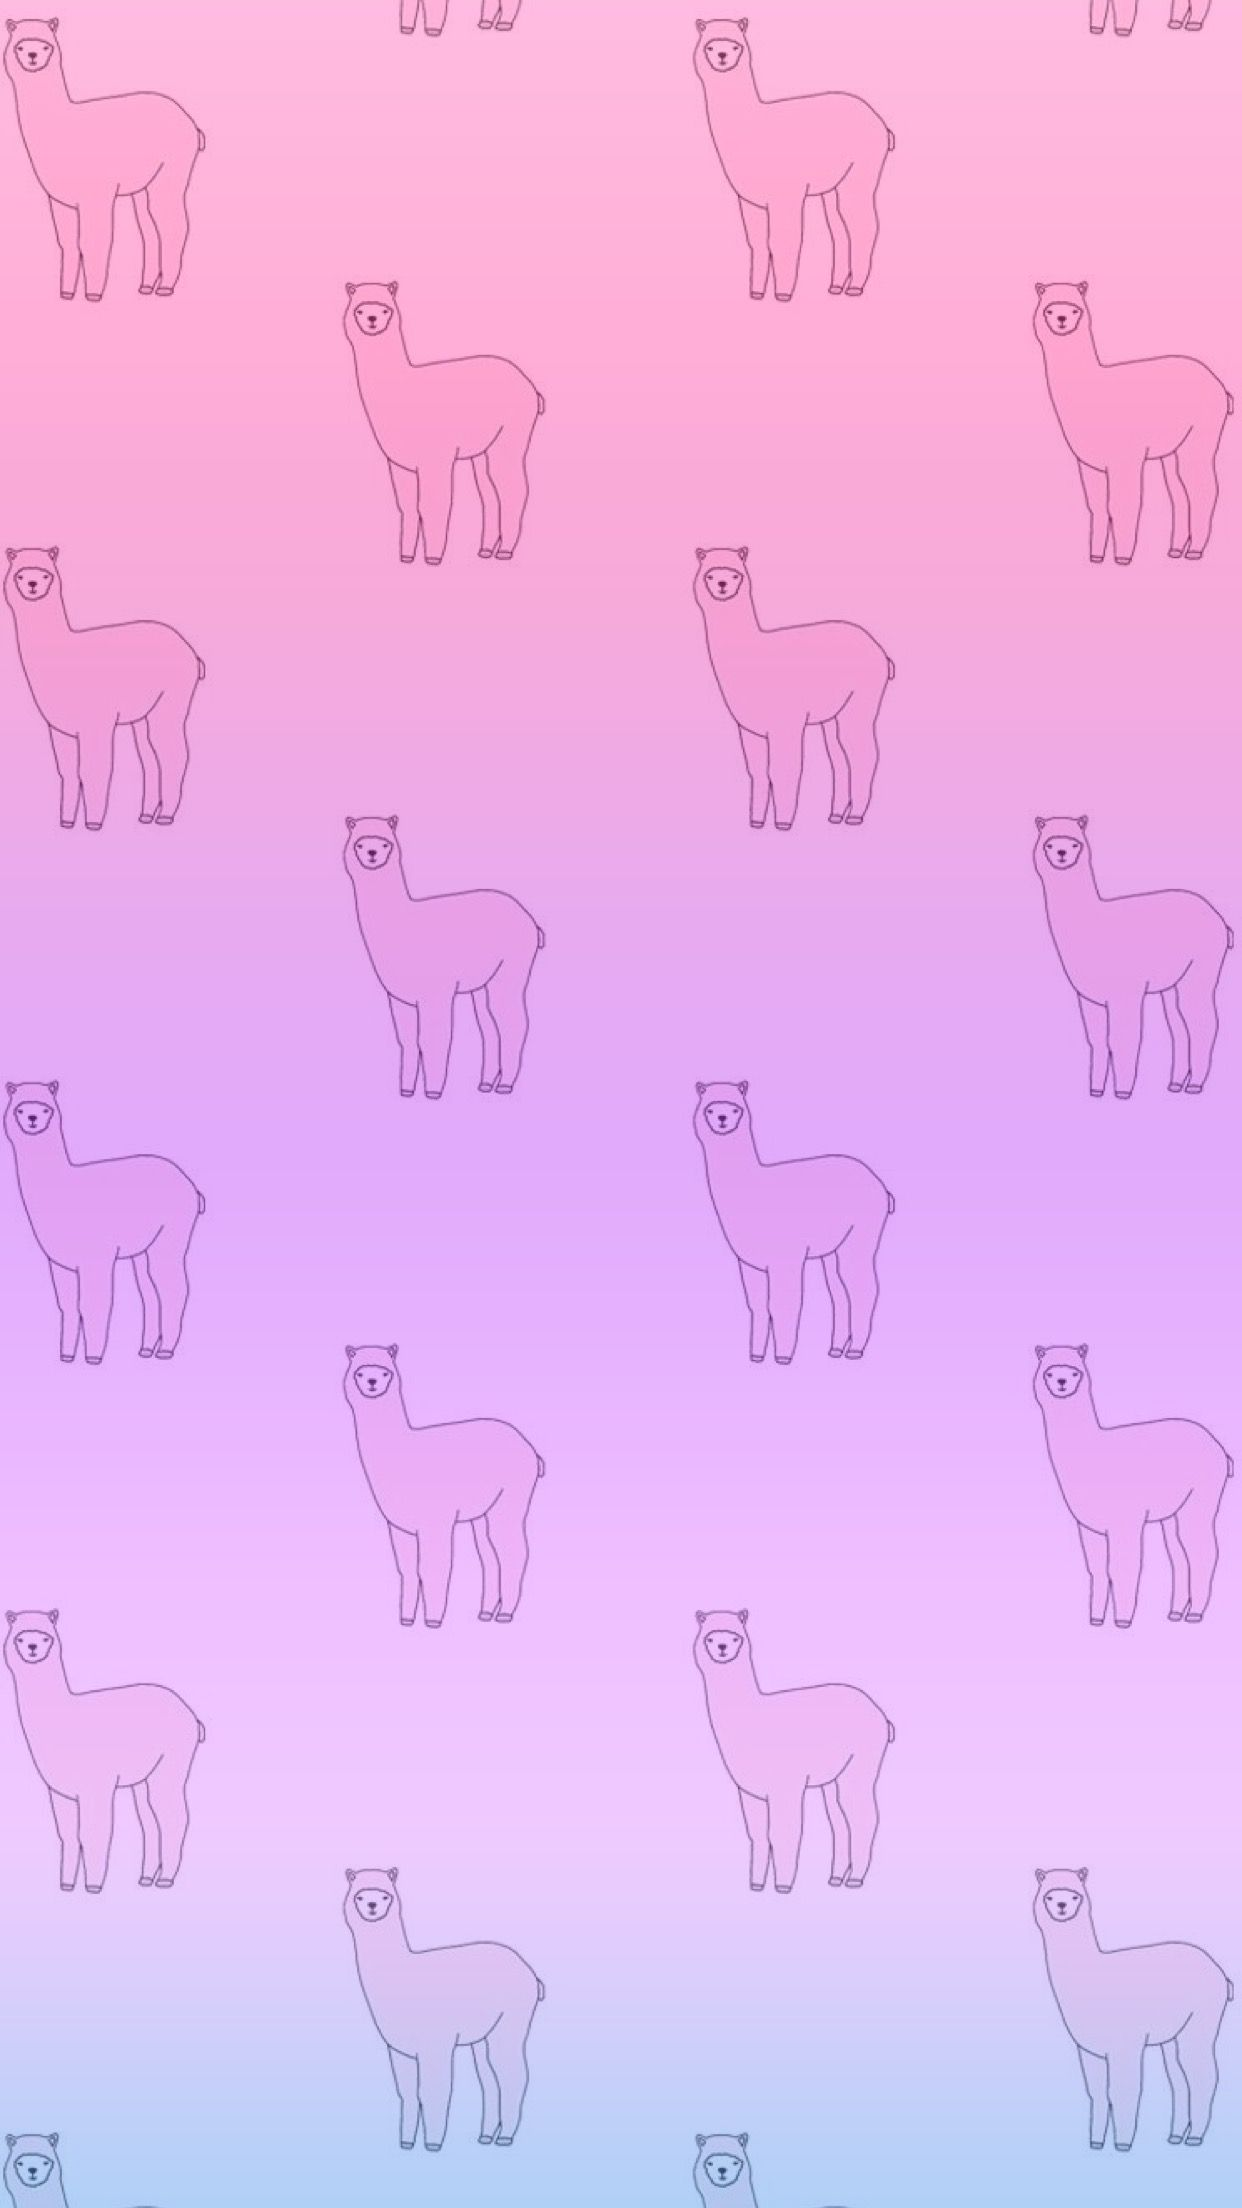 Alpaca Cute Pink Purple Gradient Wallpaper IPhone Android